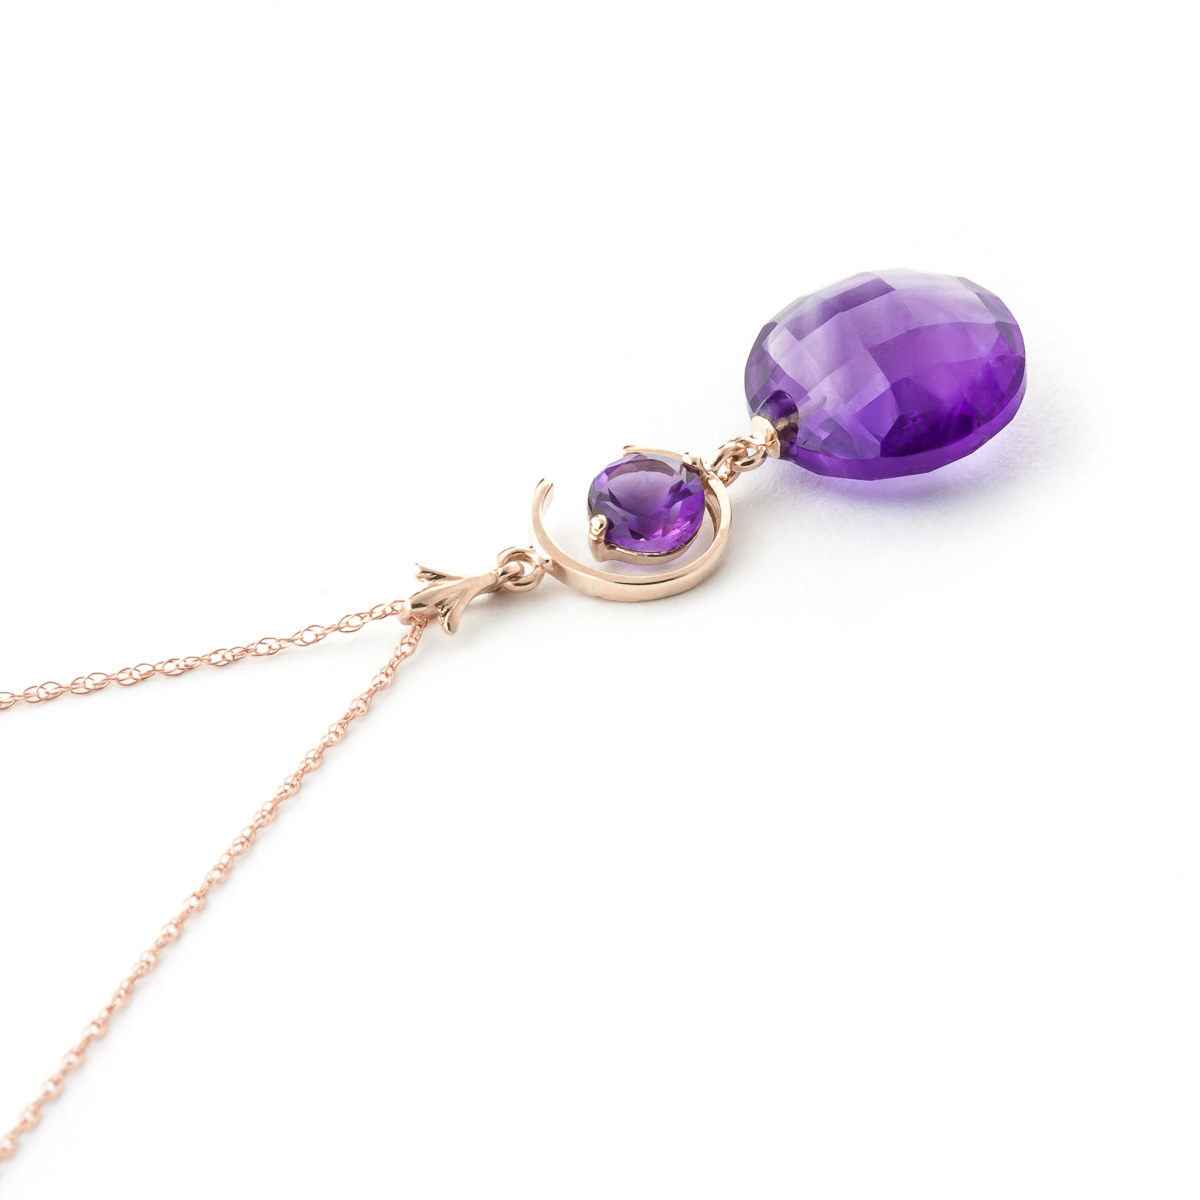 Round Brilliant Cut Amethyst Pendant Necklace 5.8ctw in 14K Rose Gold